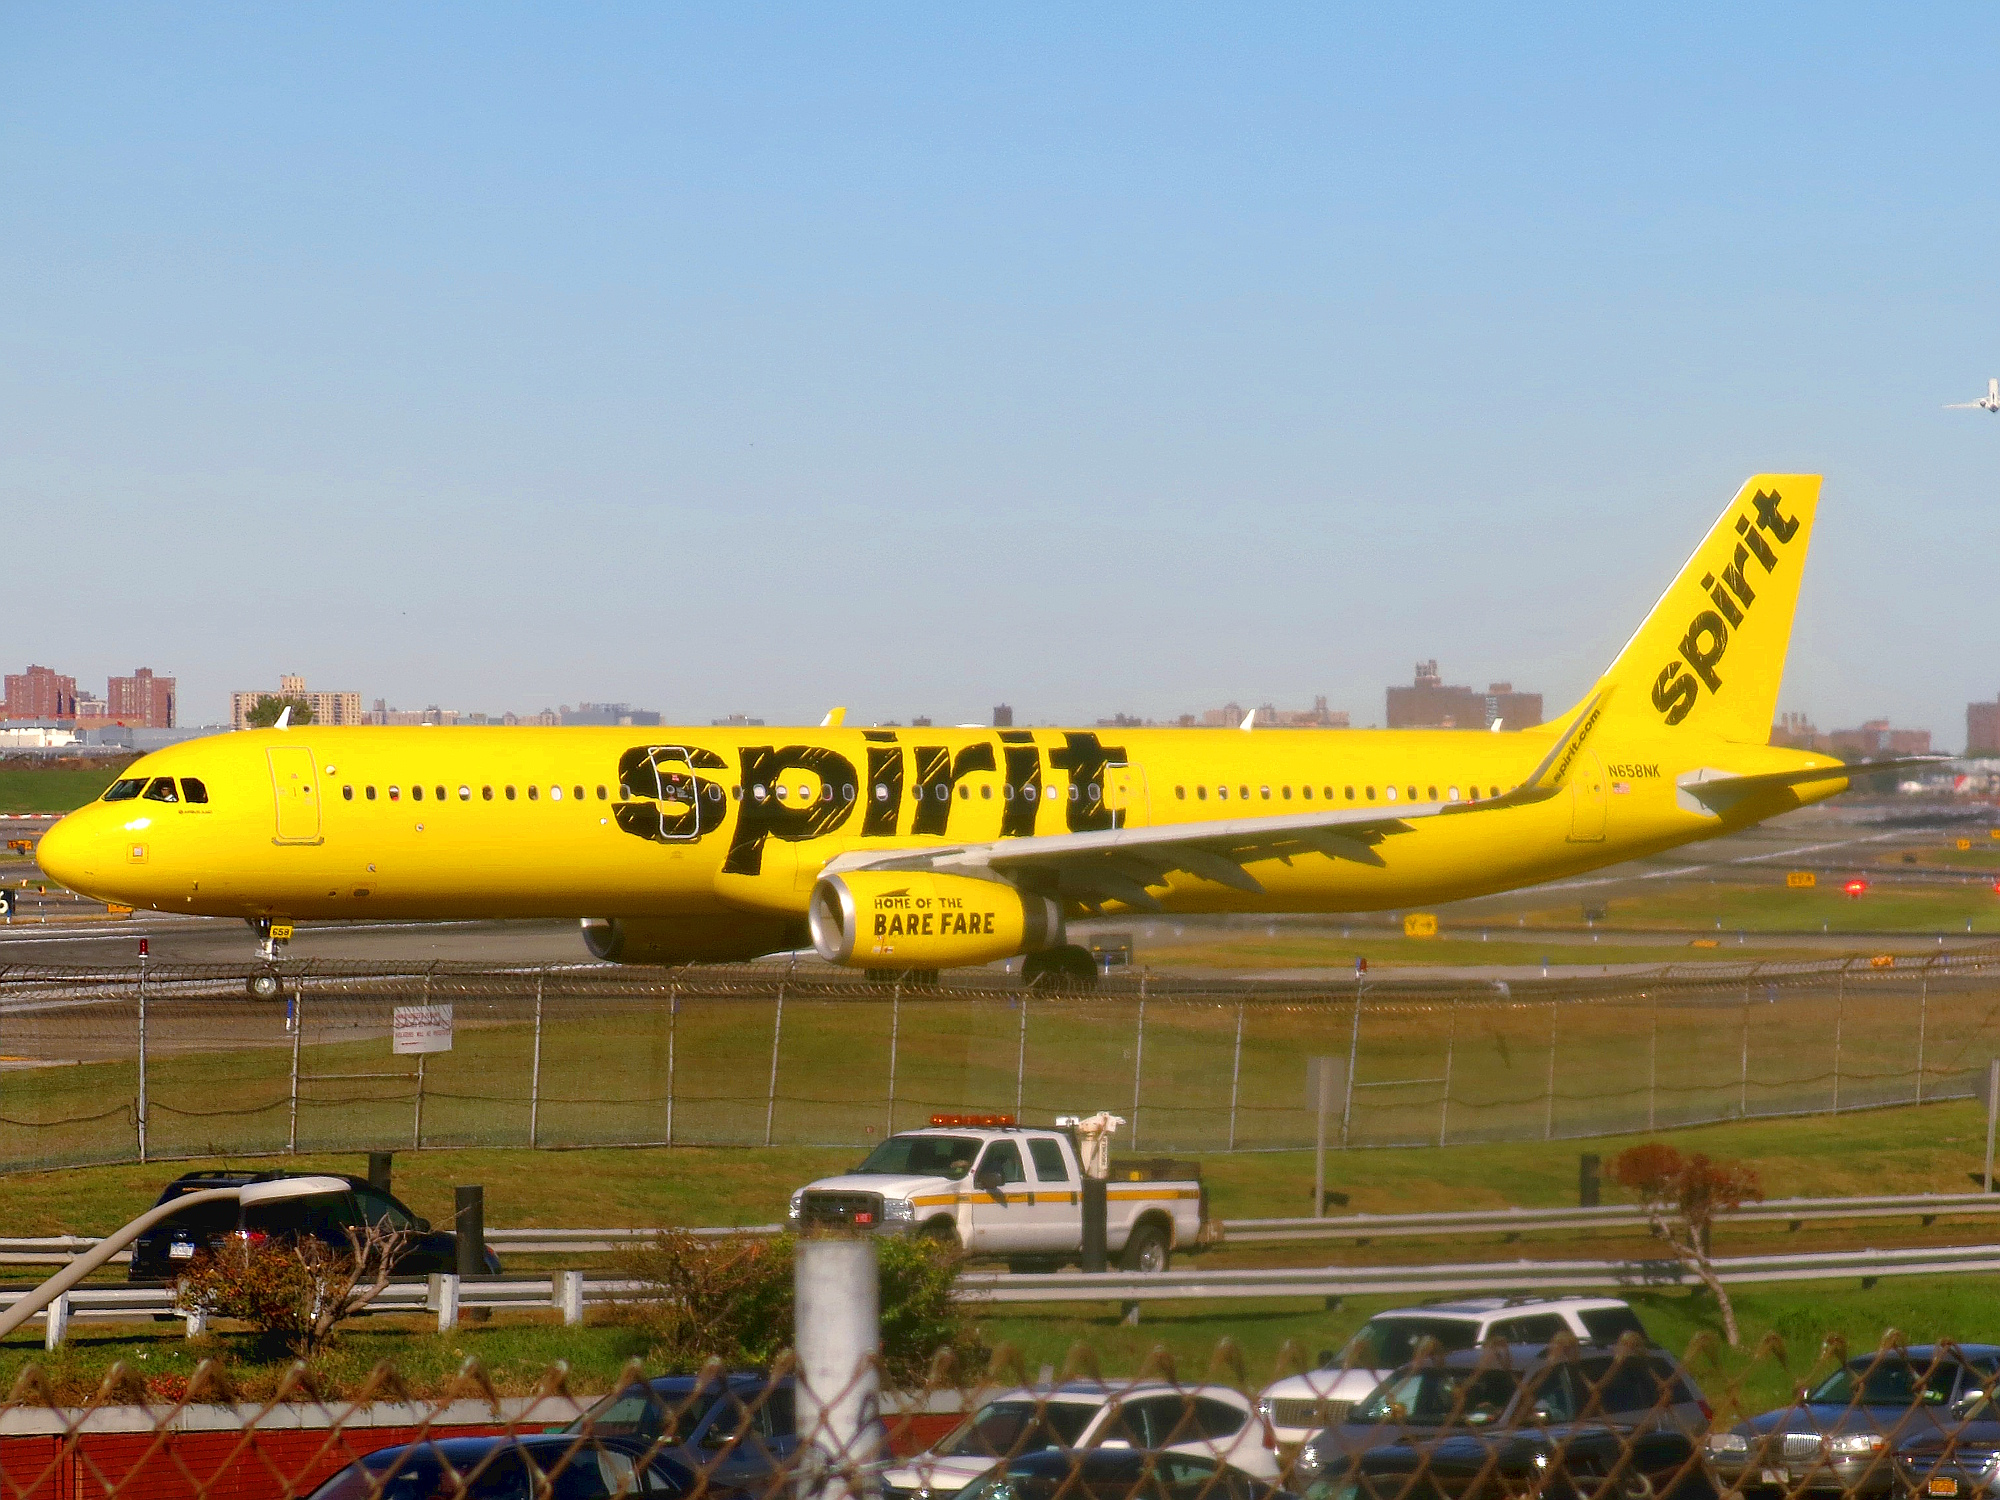 Depiction of Spirit Airlines